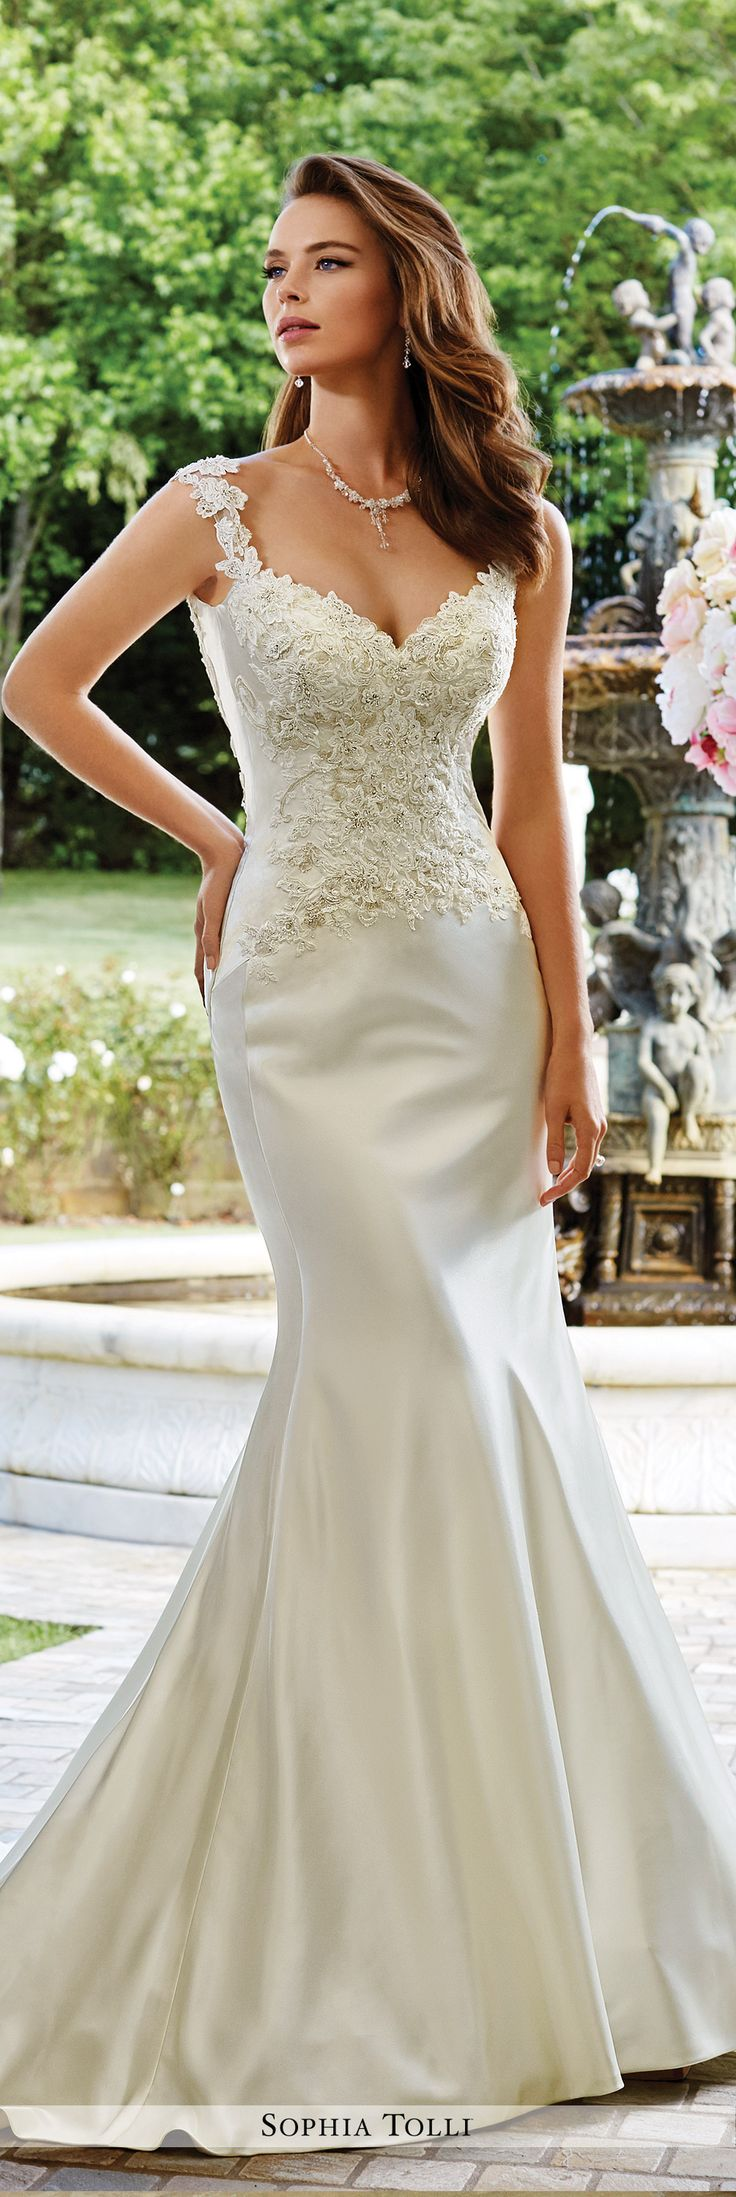 1542 best Wedding / Couture 2015 -16 images on Pinterest | Wedding ...